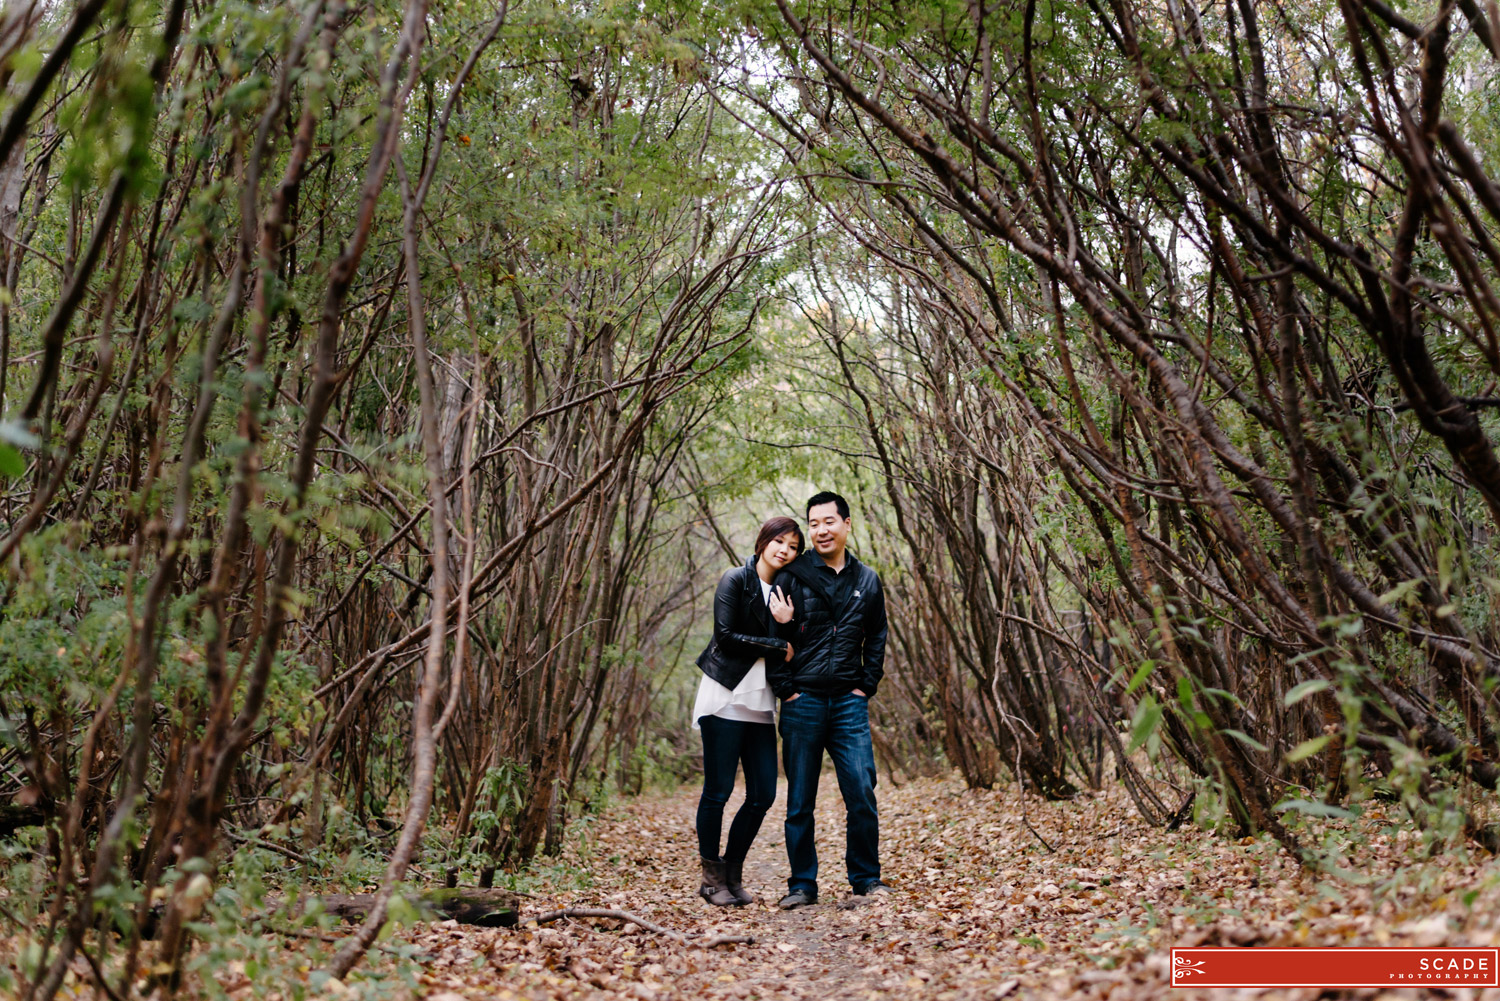 River Valley Couples Session - Dorothy and Dan - 0002.JPG